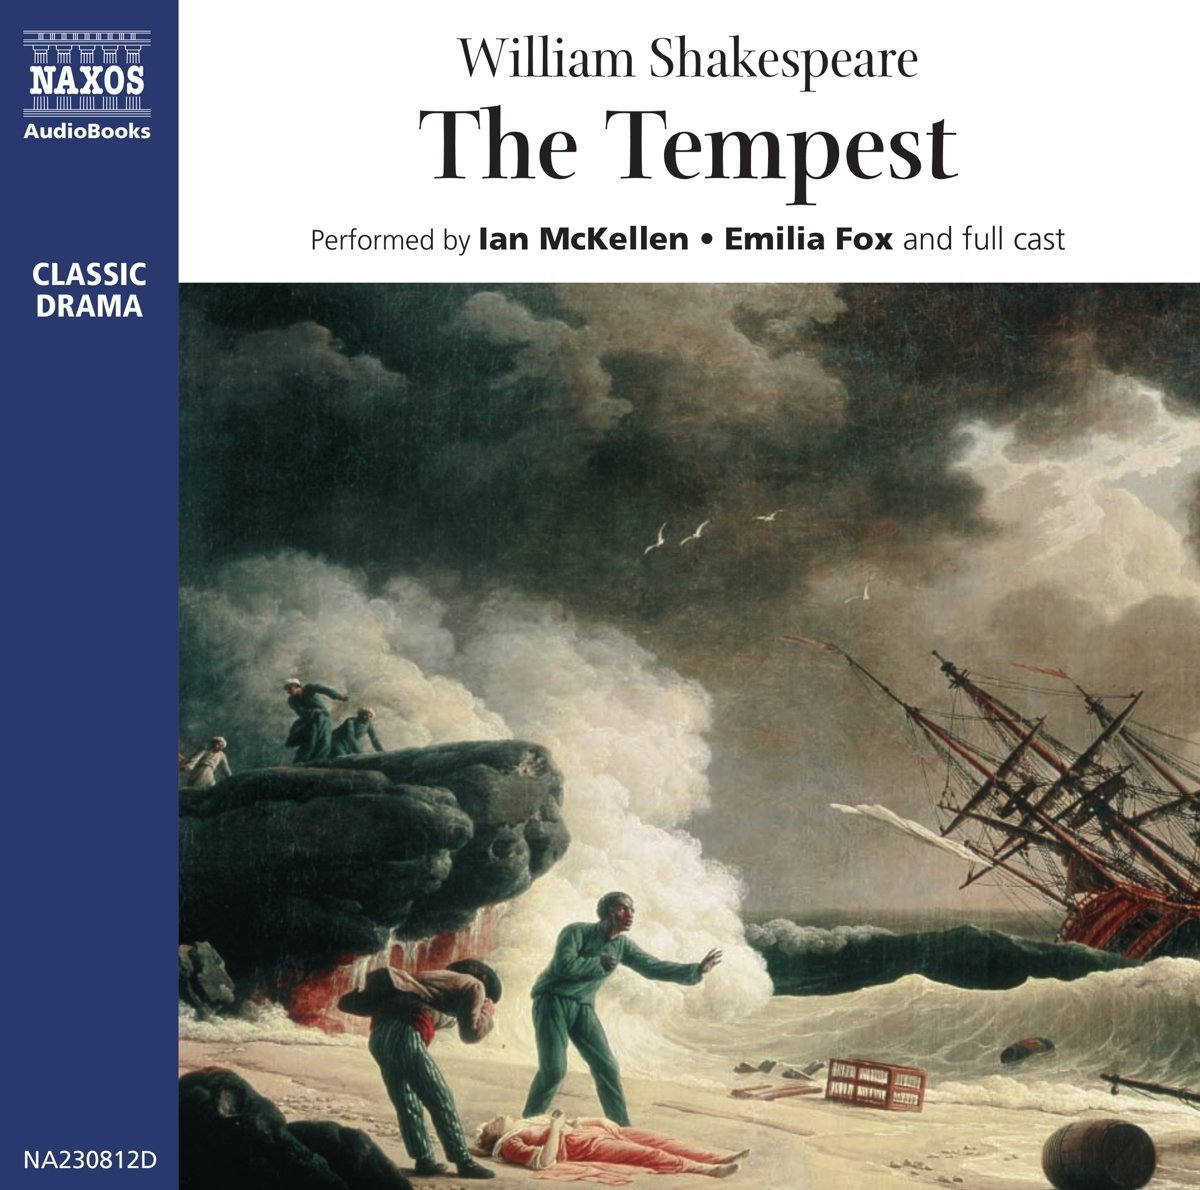 The Tempest (Naxos AudioBooks)